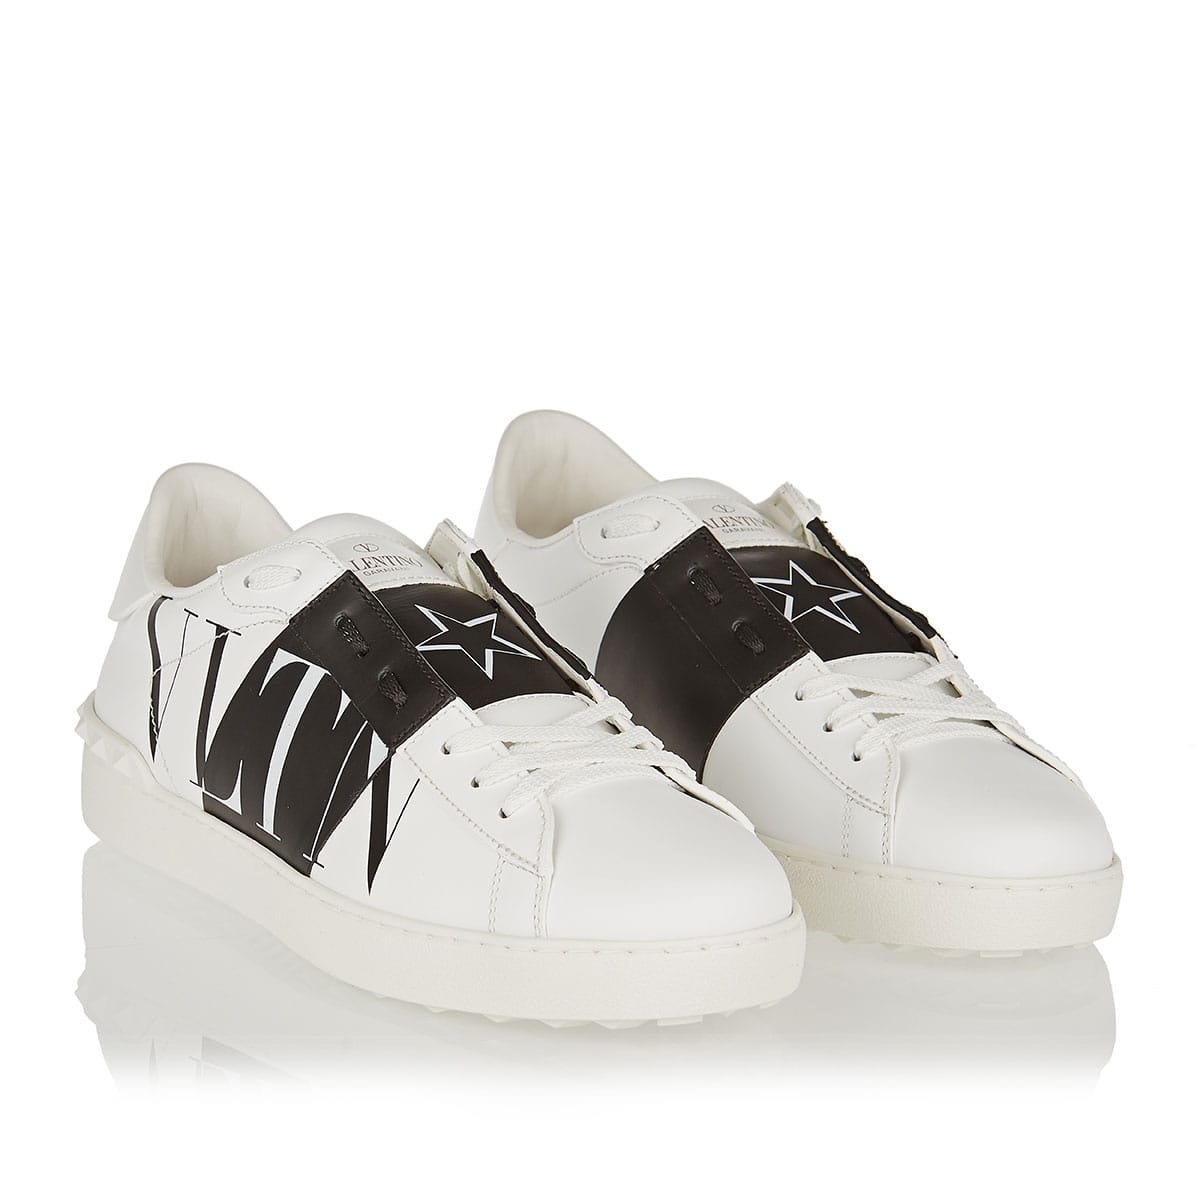 VLTN STAR open leather sneakers